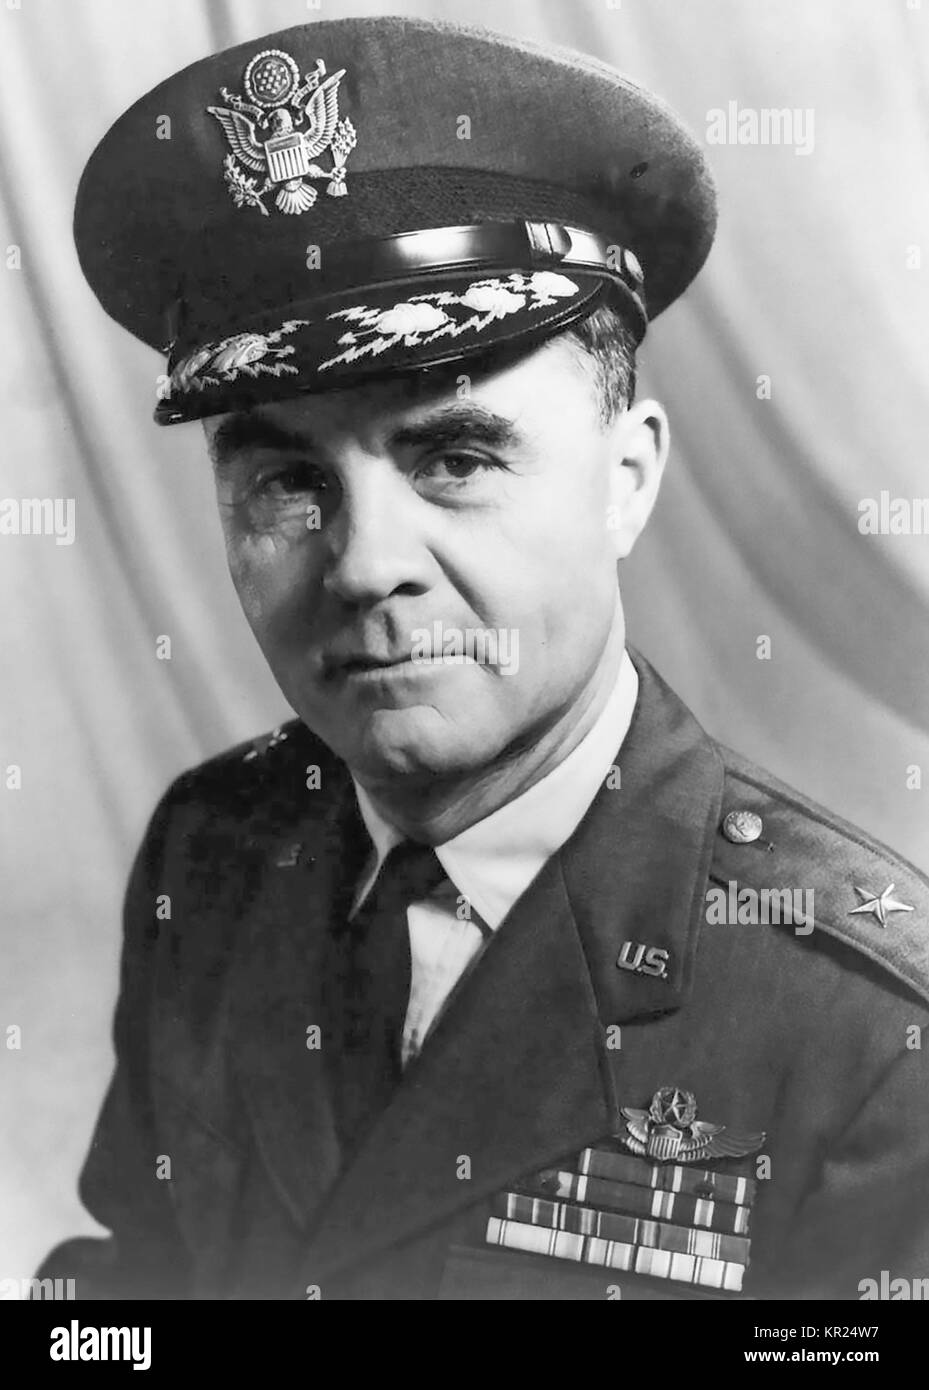 PAUL TIBBETS (1915-2007) As a Brigadier General in the USAF. He piloted the Enola Gay which dropped Little Boy, - Stock Image